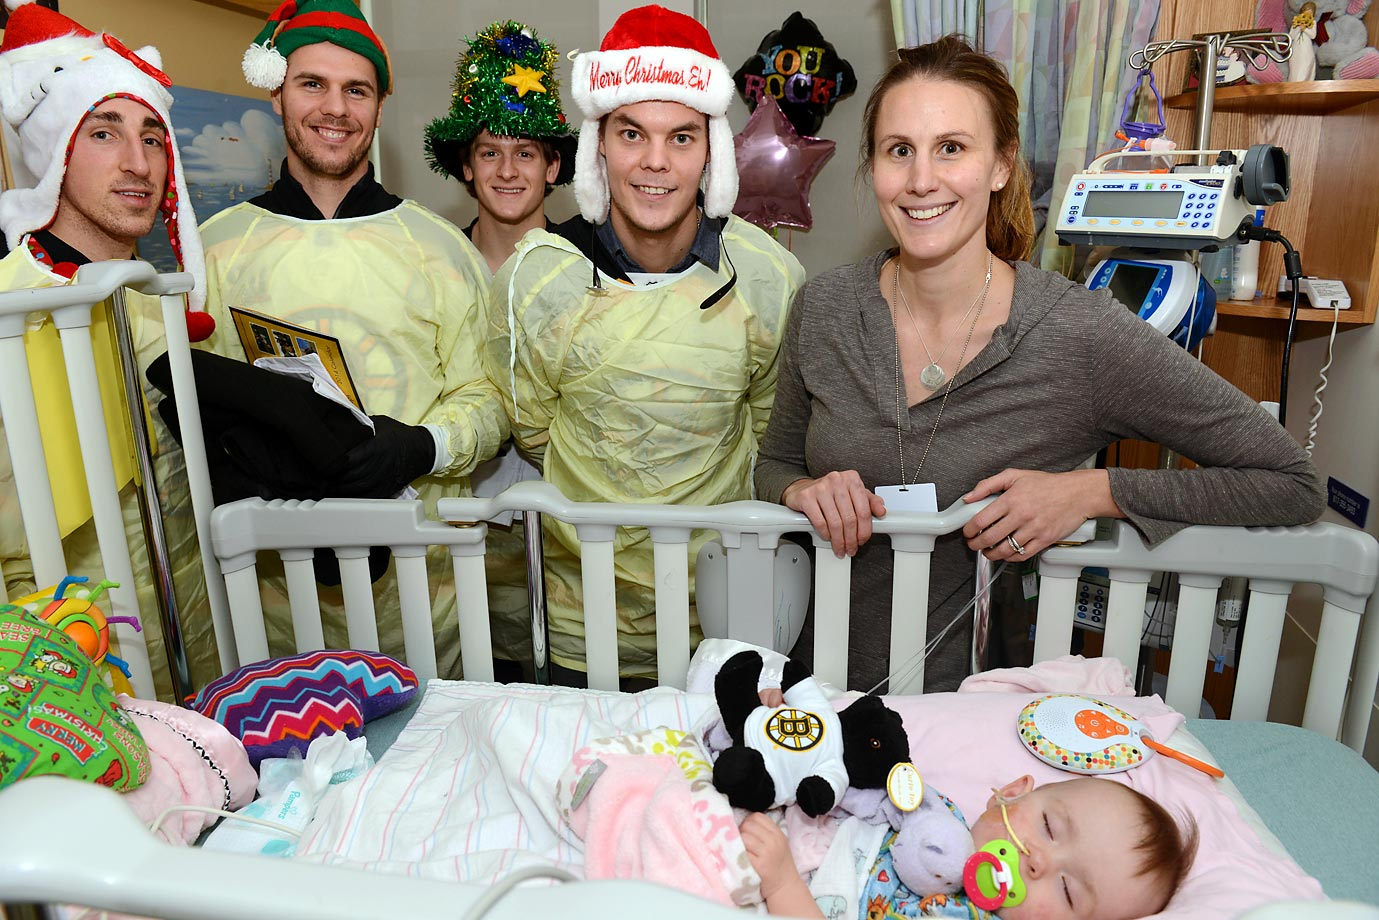 Brad Marchand, David Krejci, Tory Krug and Tukka Rask of the Boston Bruins visit the Boston Children's Hospital.